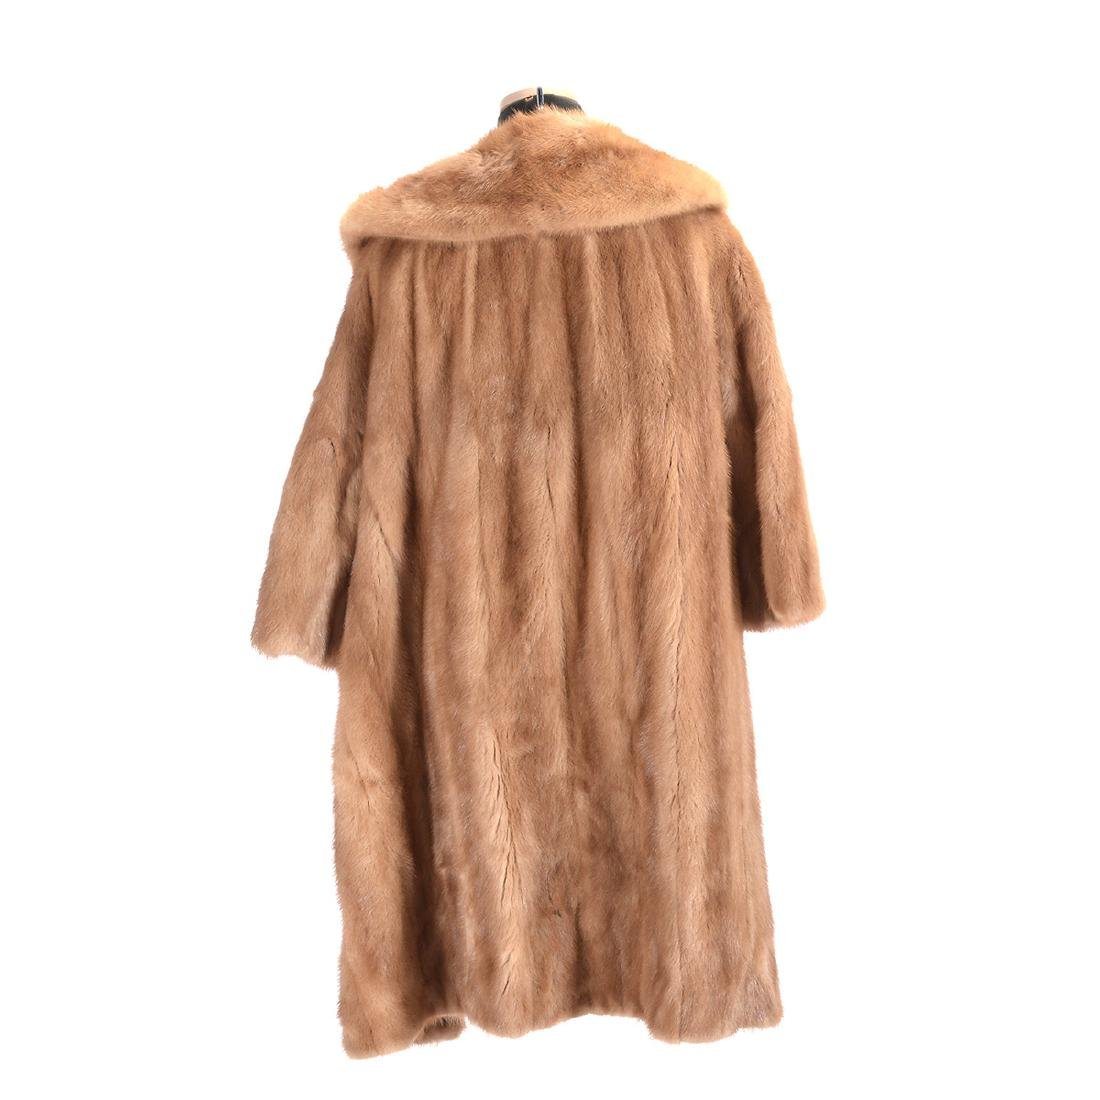 Brown Full-Length Mink Coat - 3